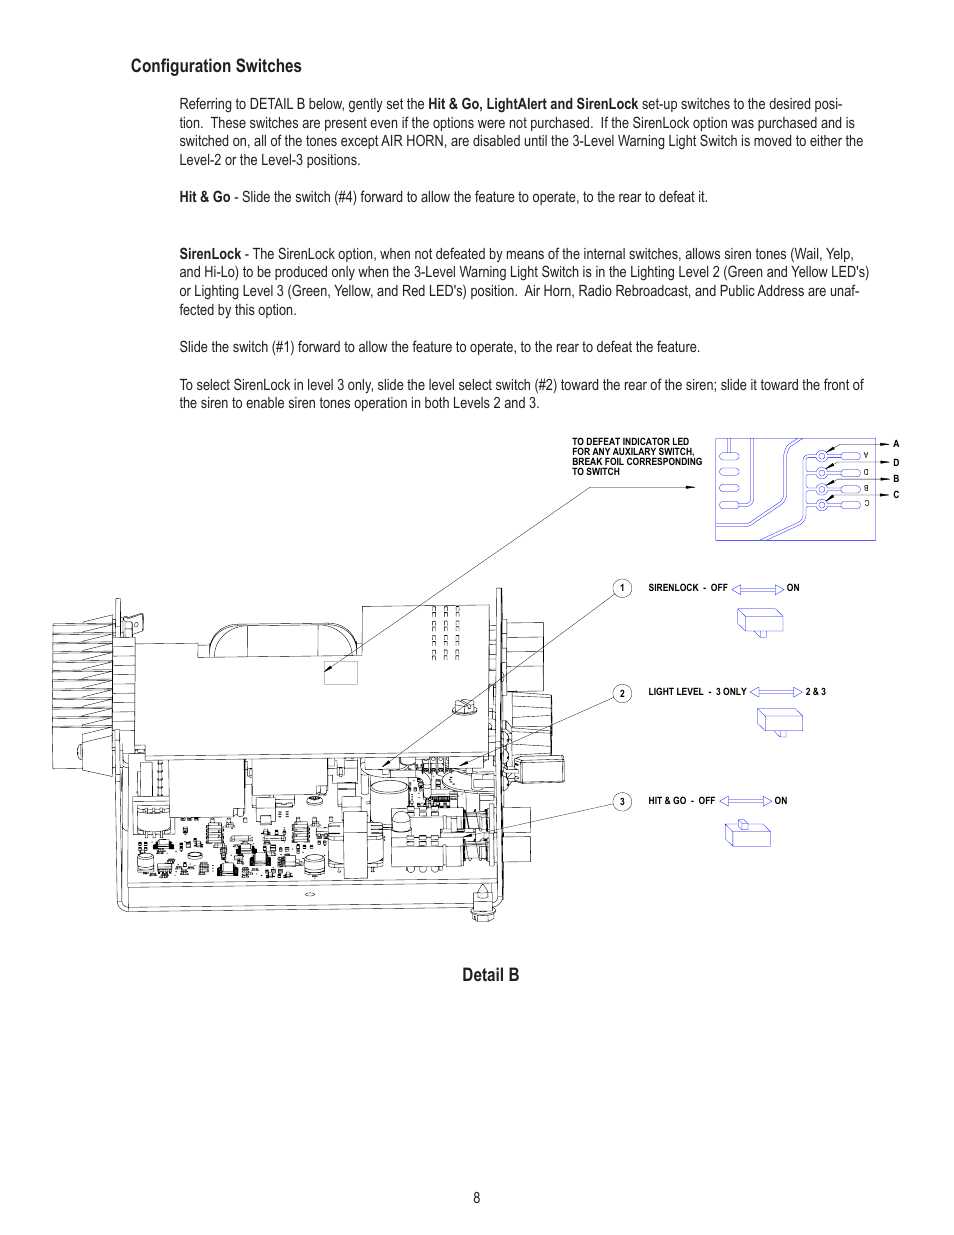 Configuration Switches  Detail B